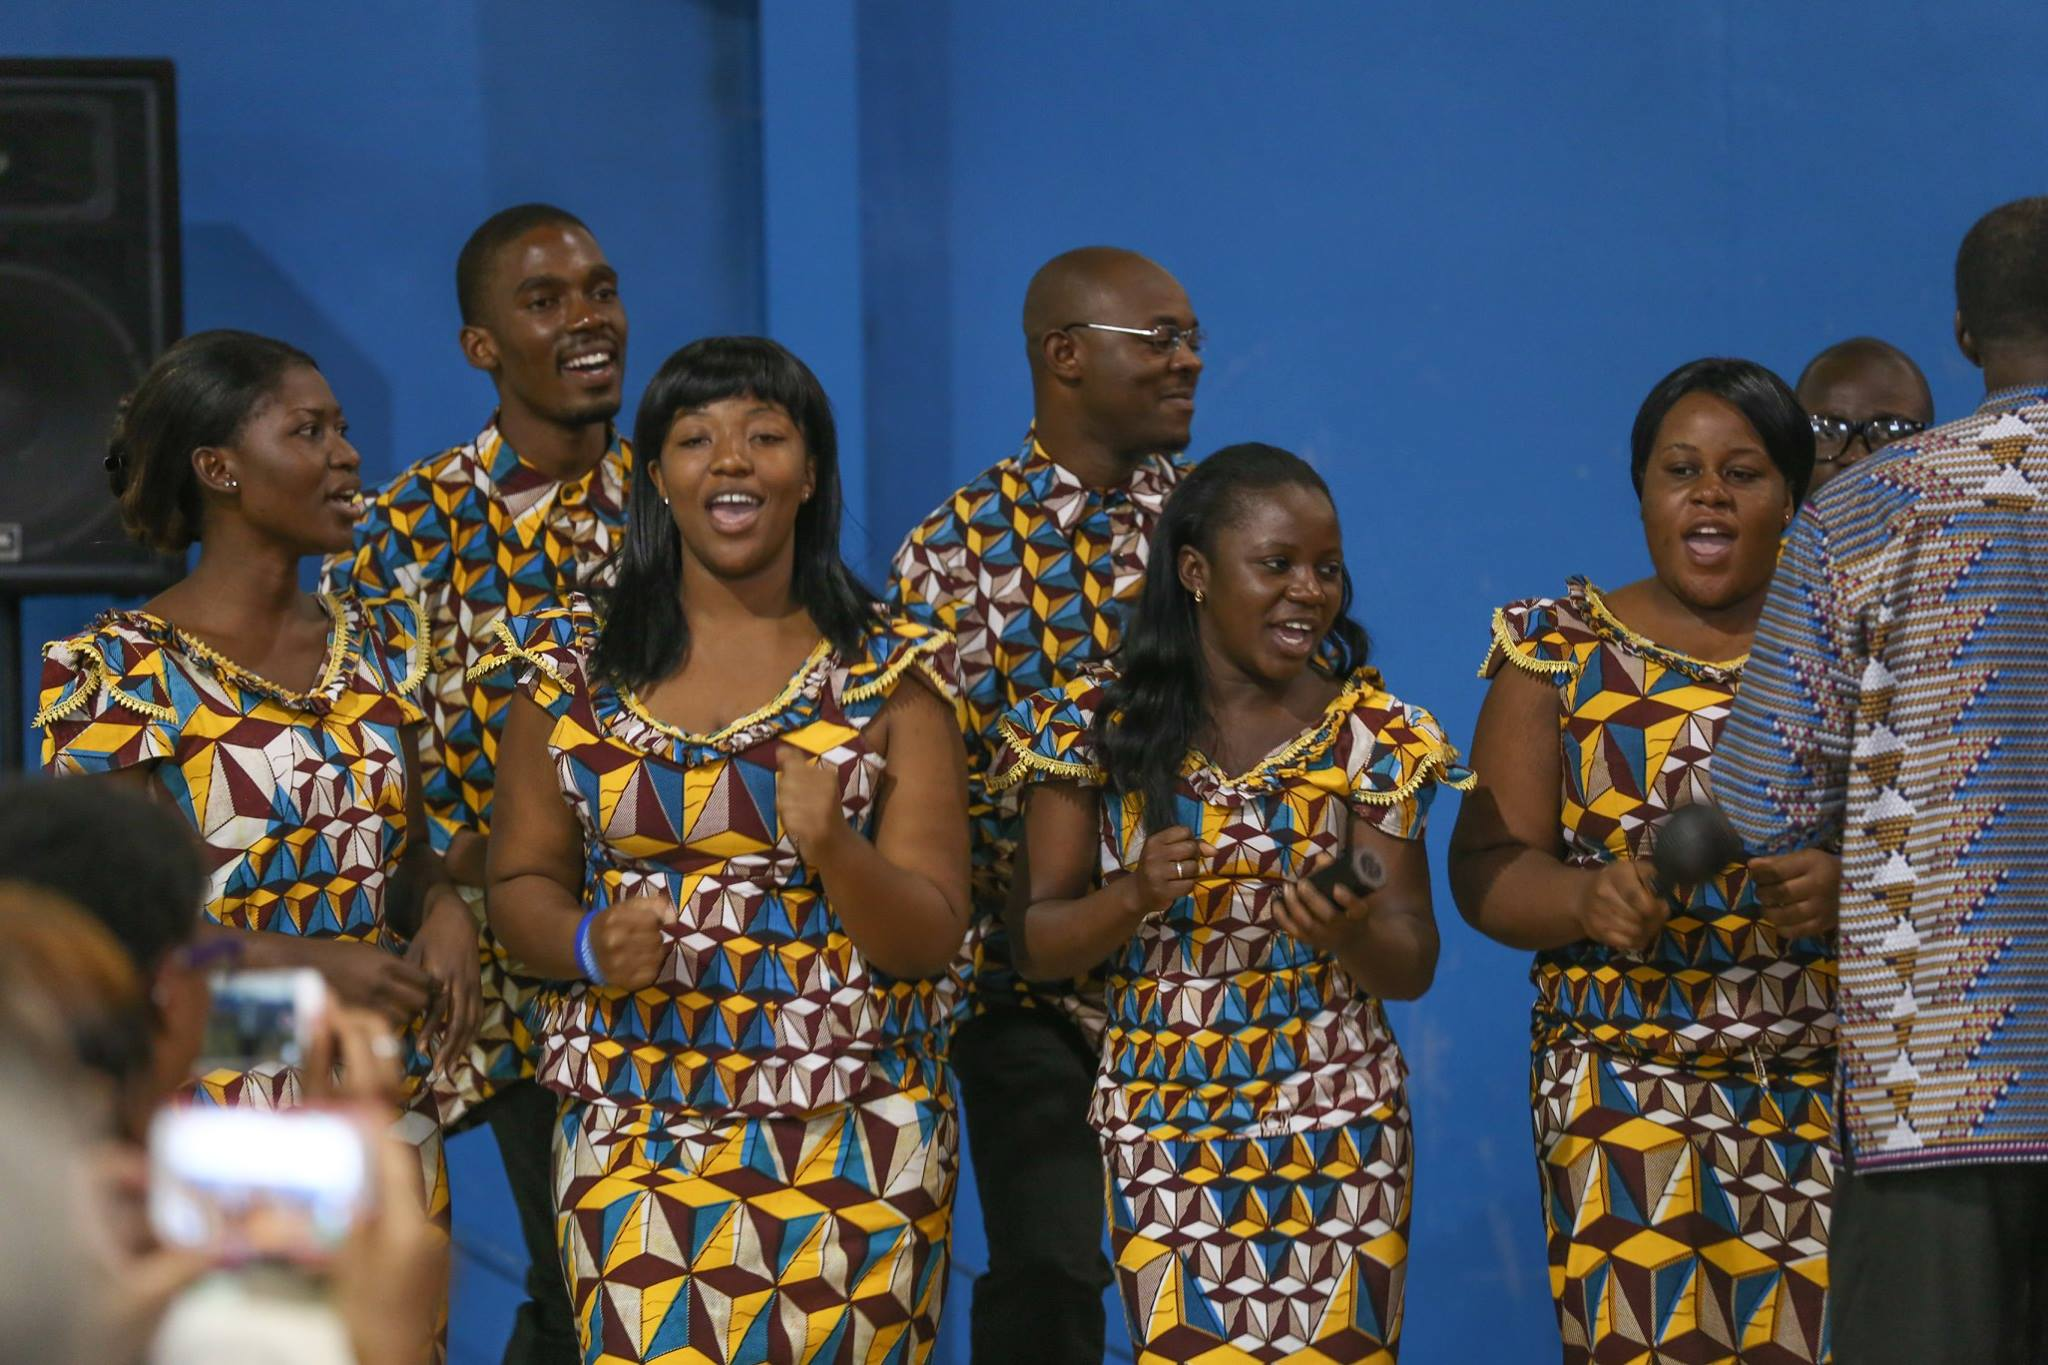 Africa University Choir, USA, Rust College, music, Mississippi, UMC, students